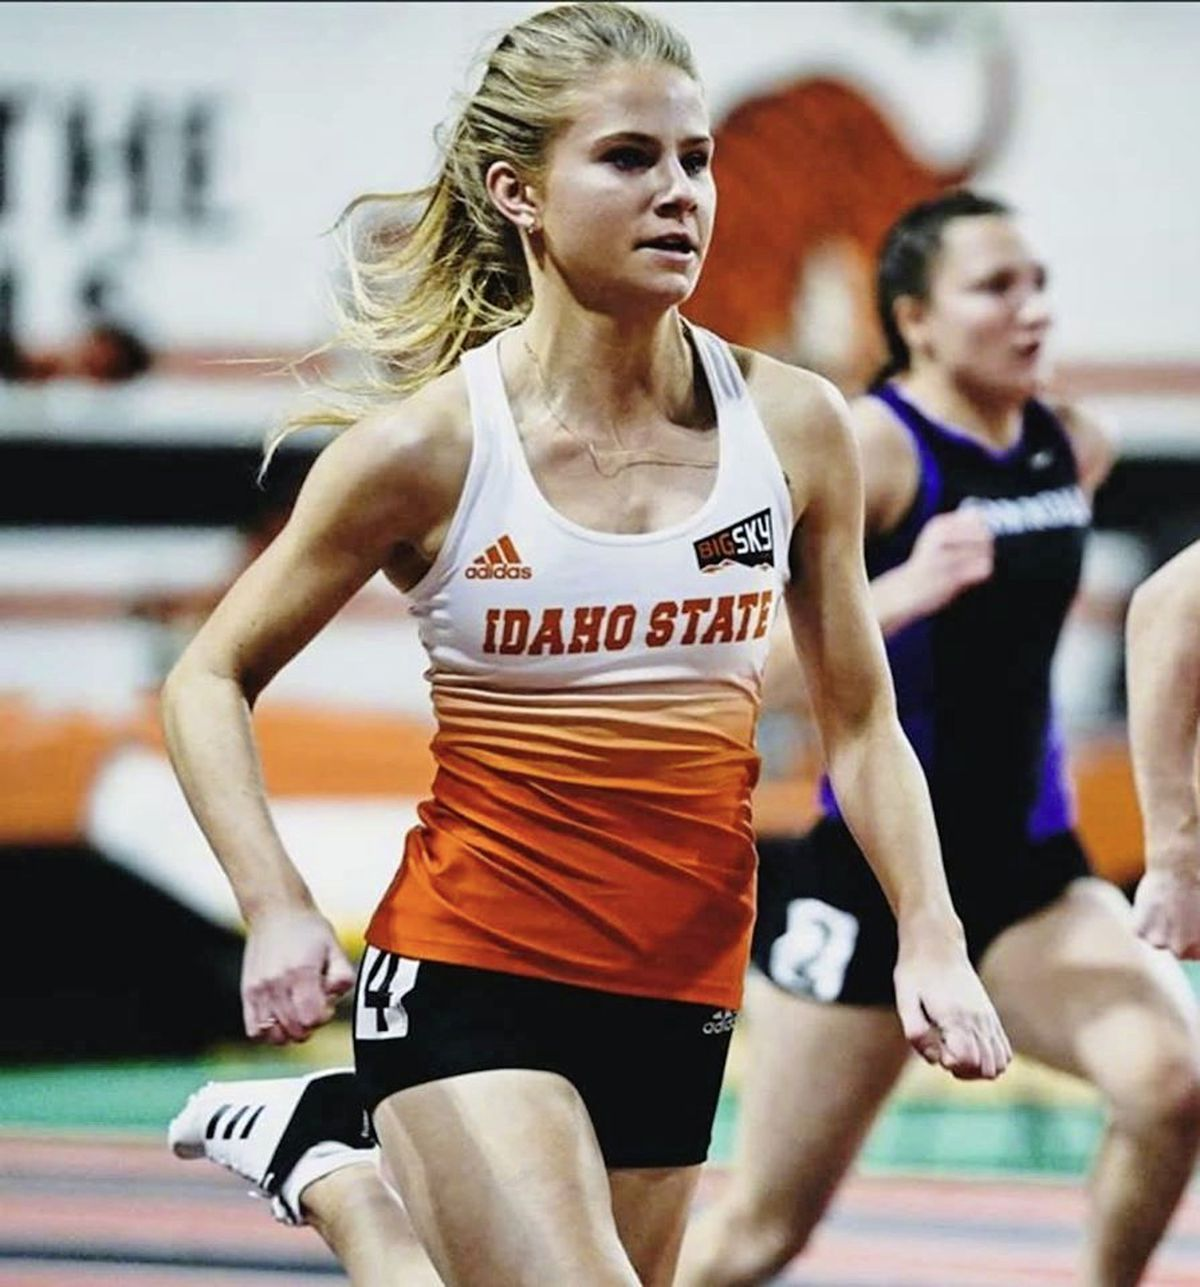 Guernsey sprinter Indi Gallagher competing for Idaho State University. (26894824)